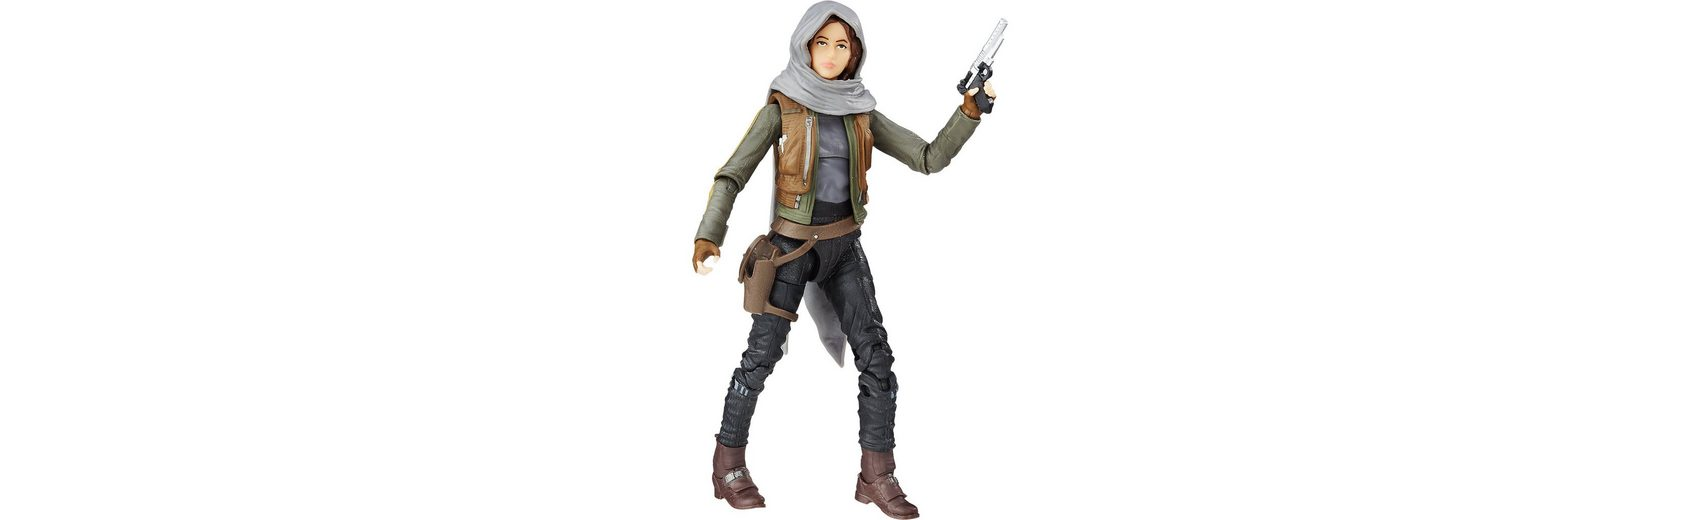 Hasbro Star Wars Rogue One - The Black Series - Figur Jyn Erso 15 c